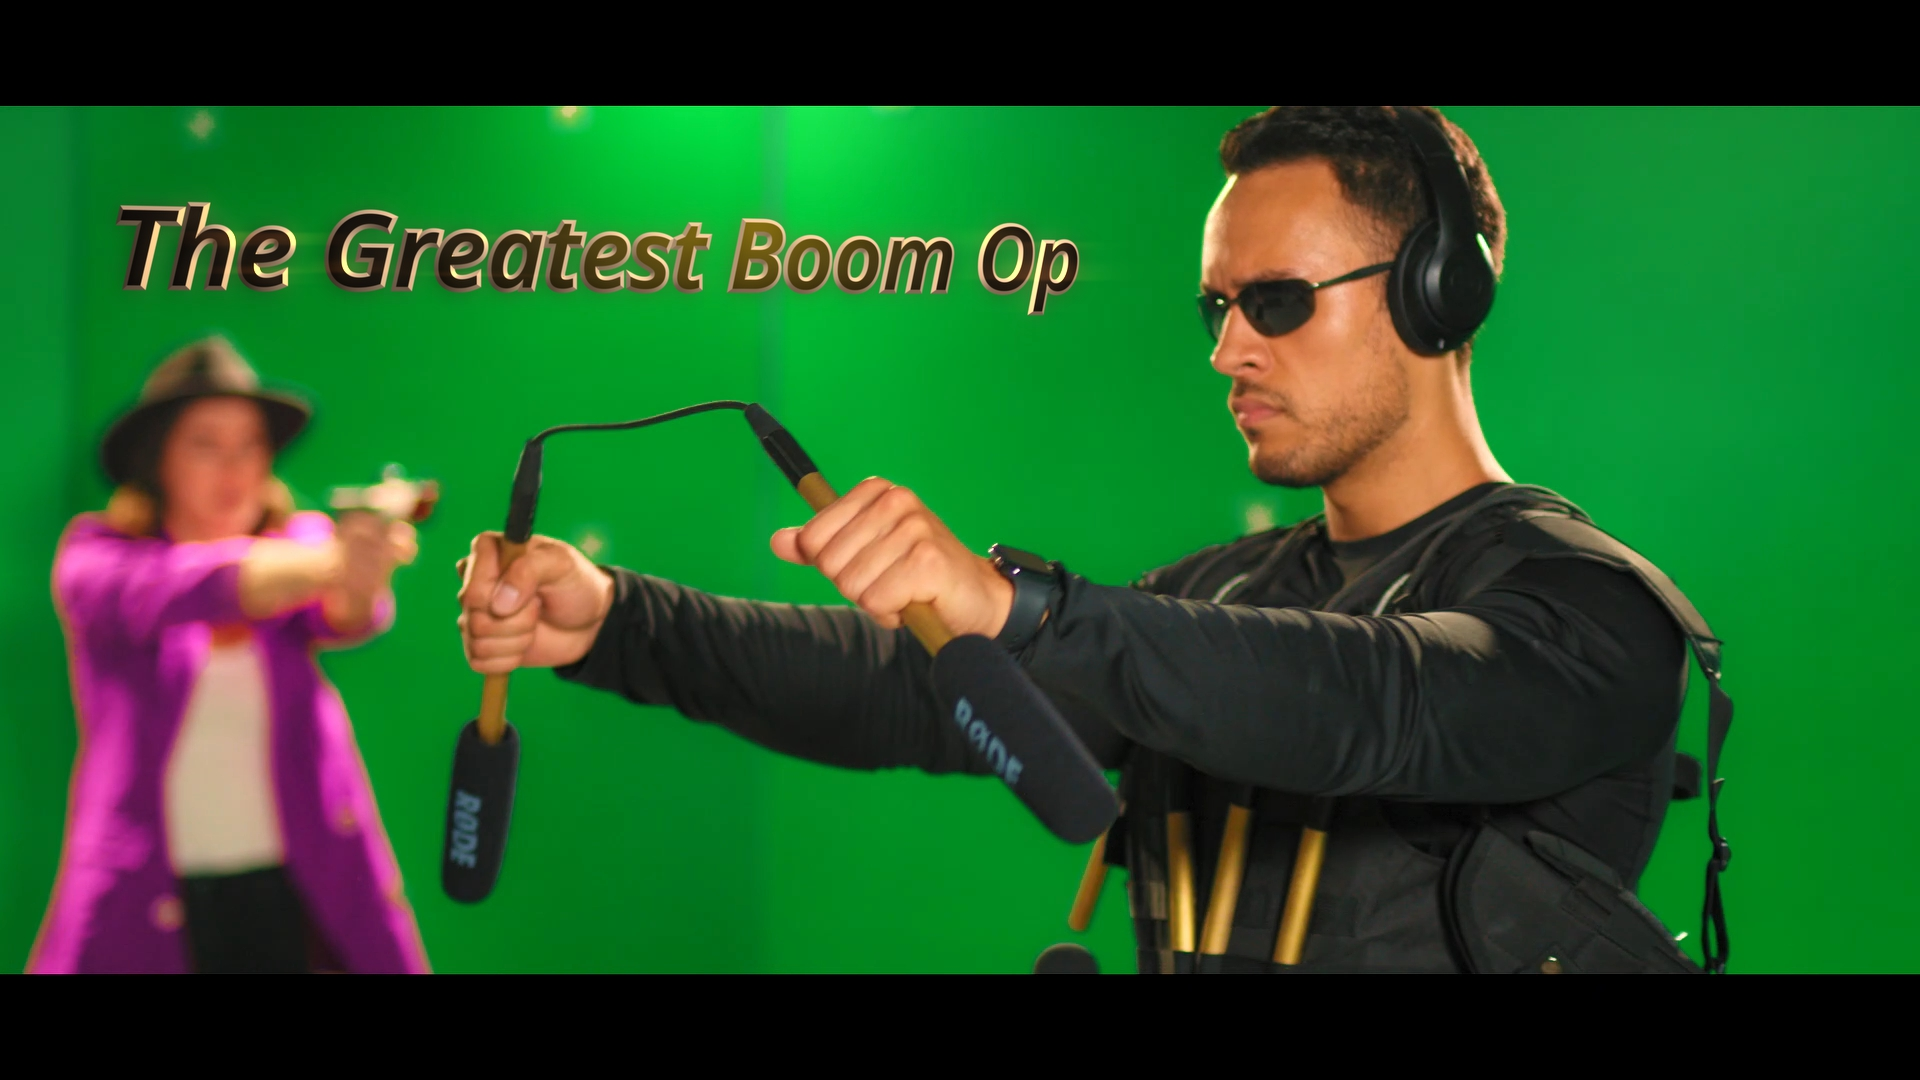 The Greatest Boom Op (My Rode Reel 2020)